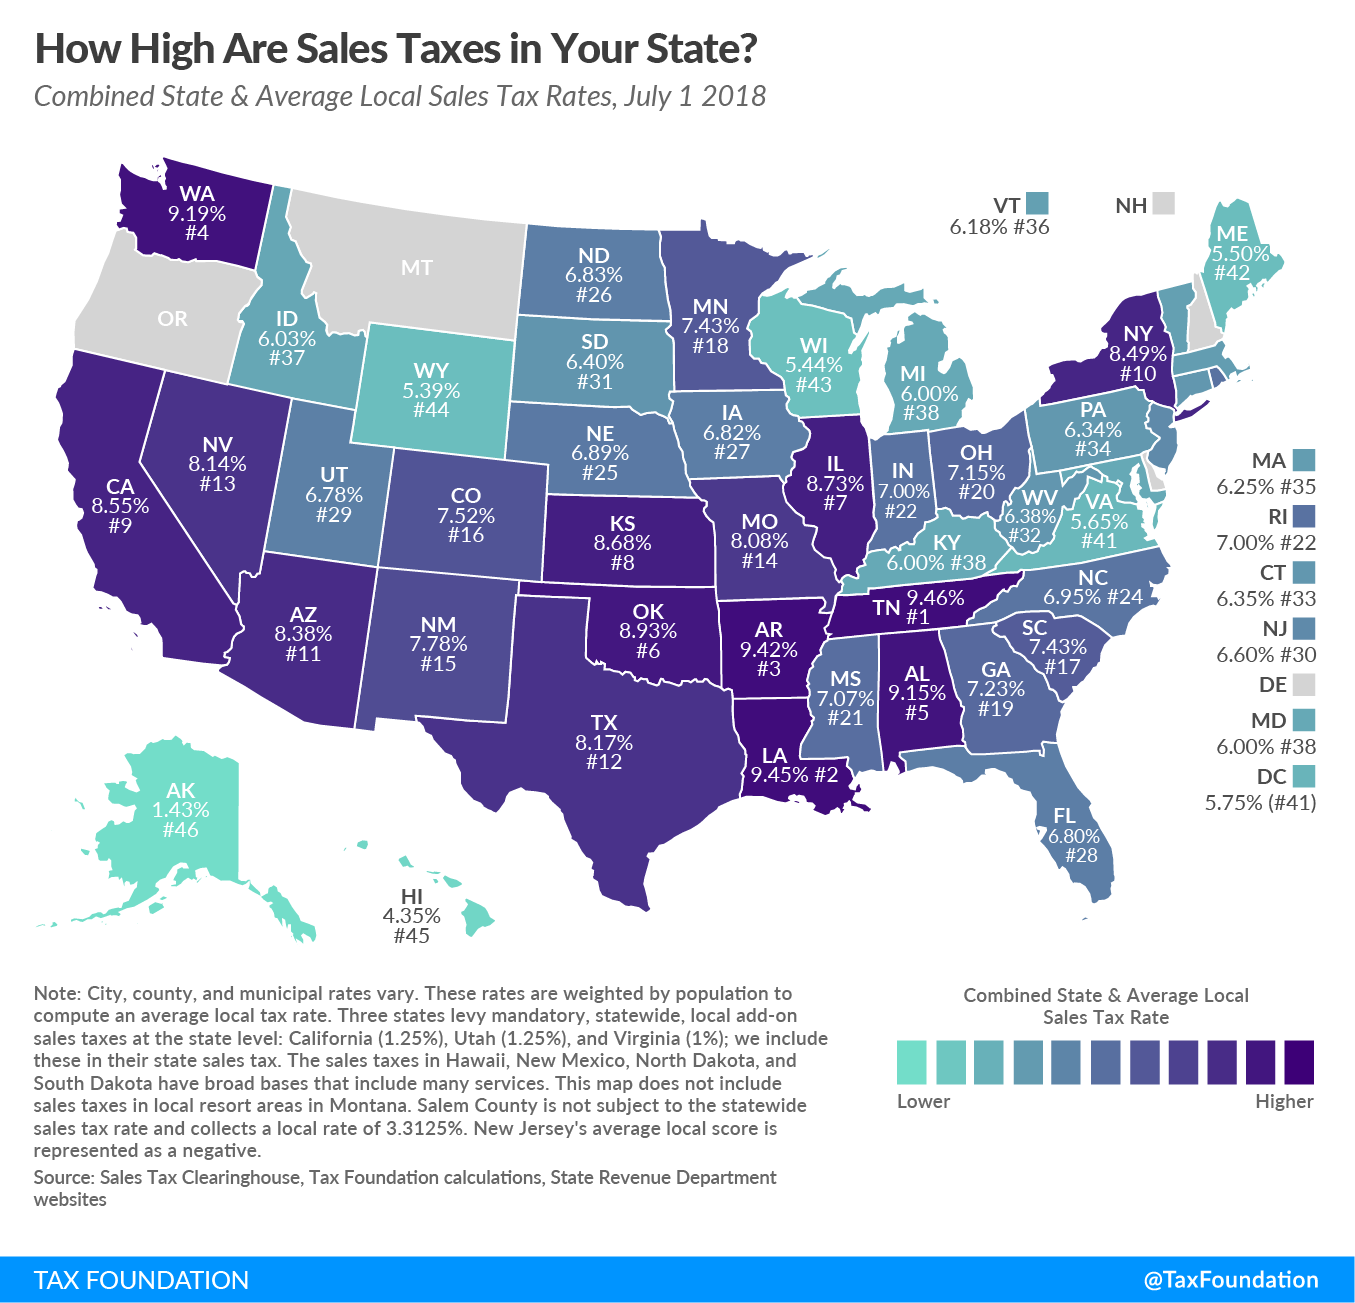 How Much Is Average Property Tax In Florida